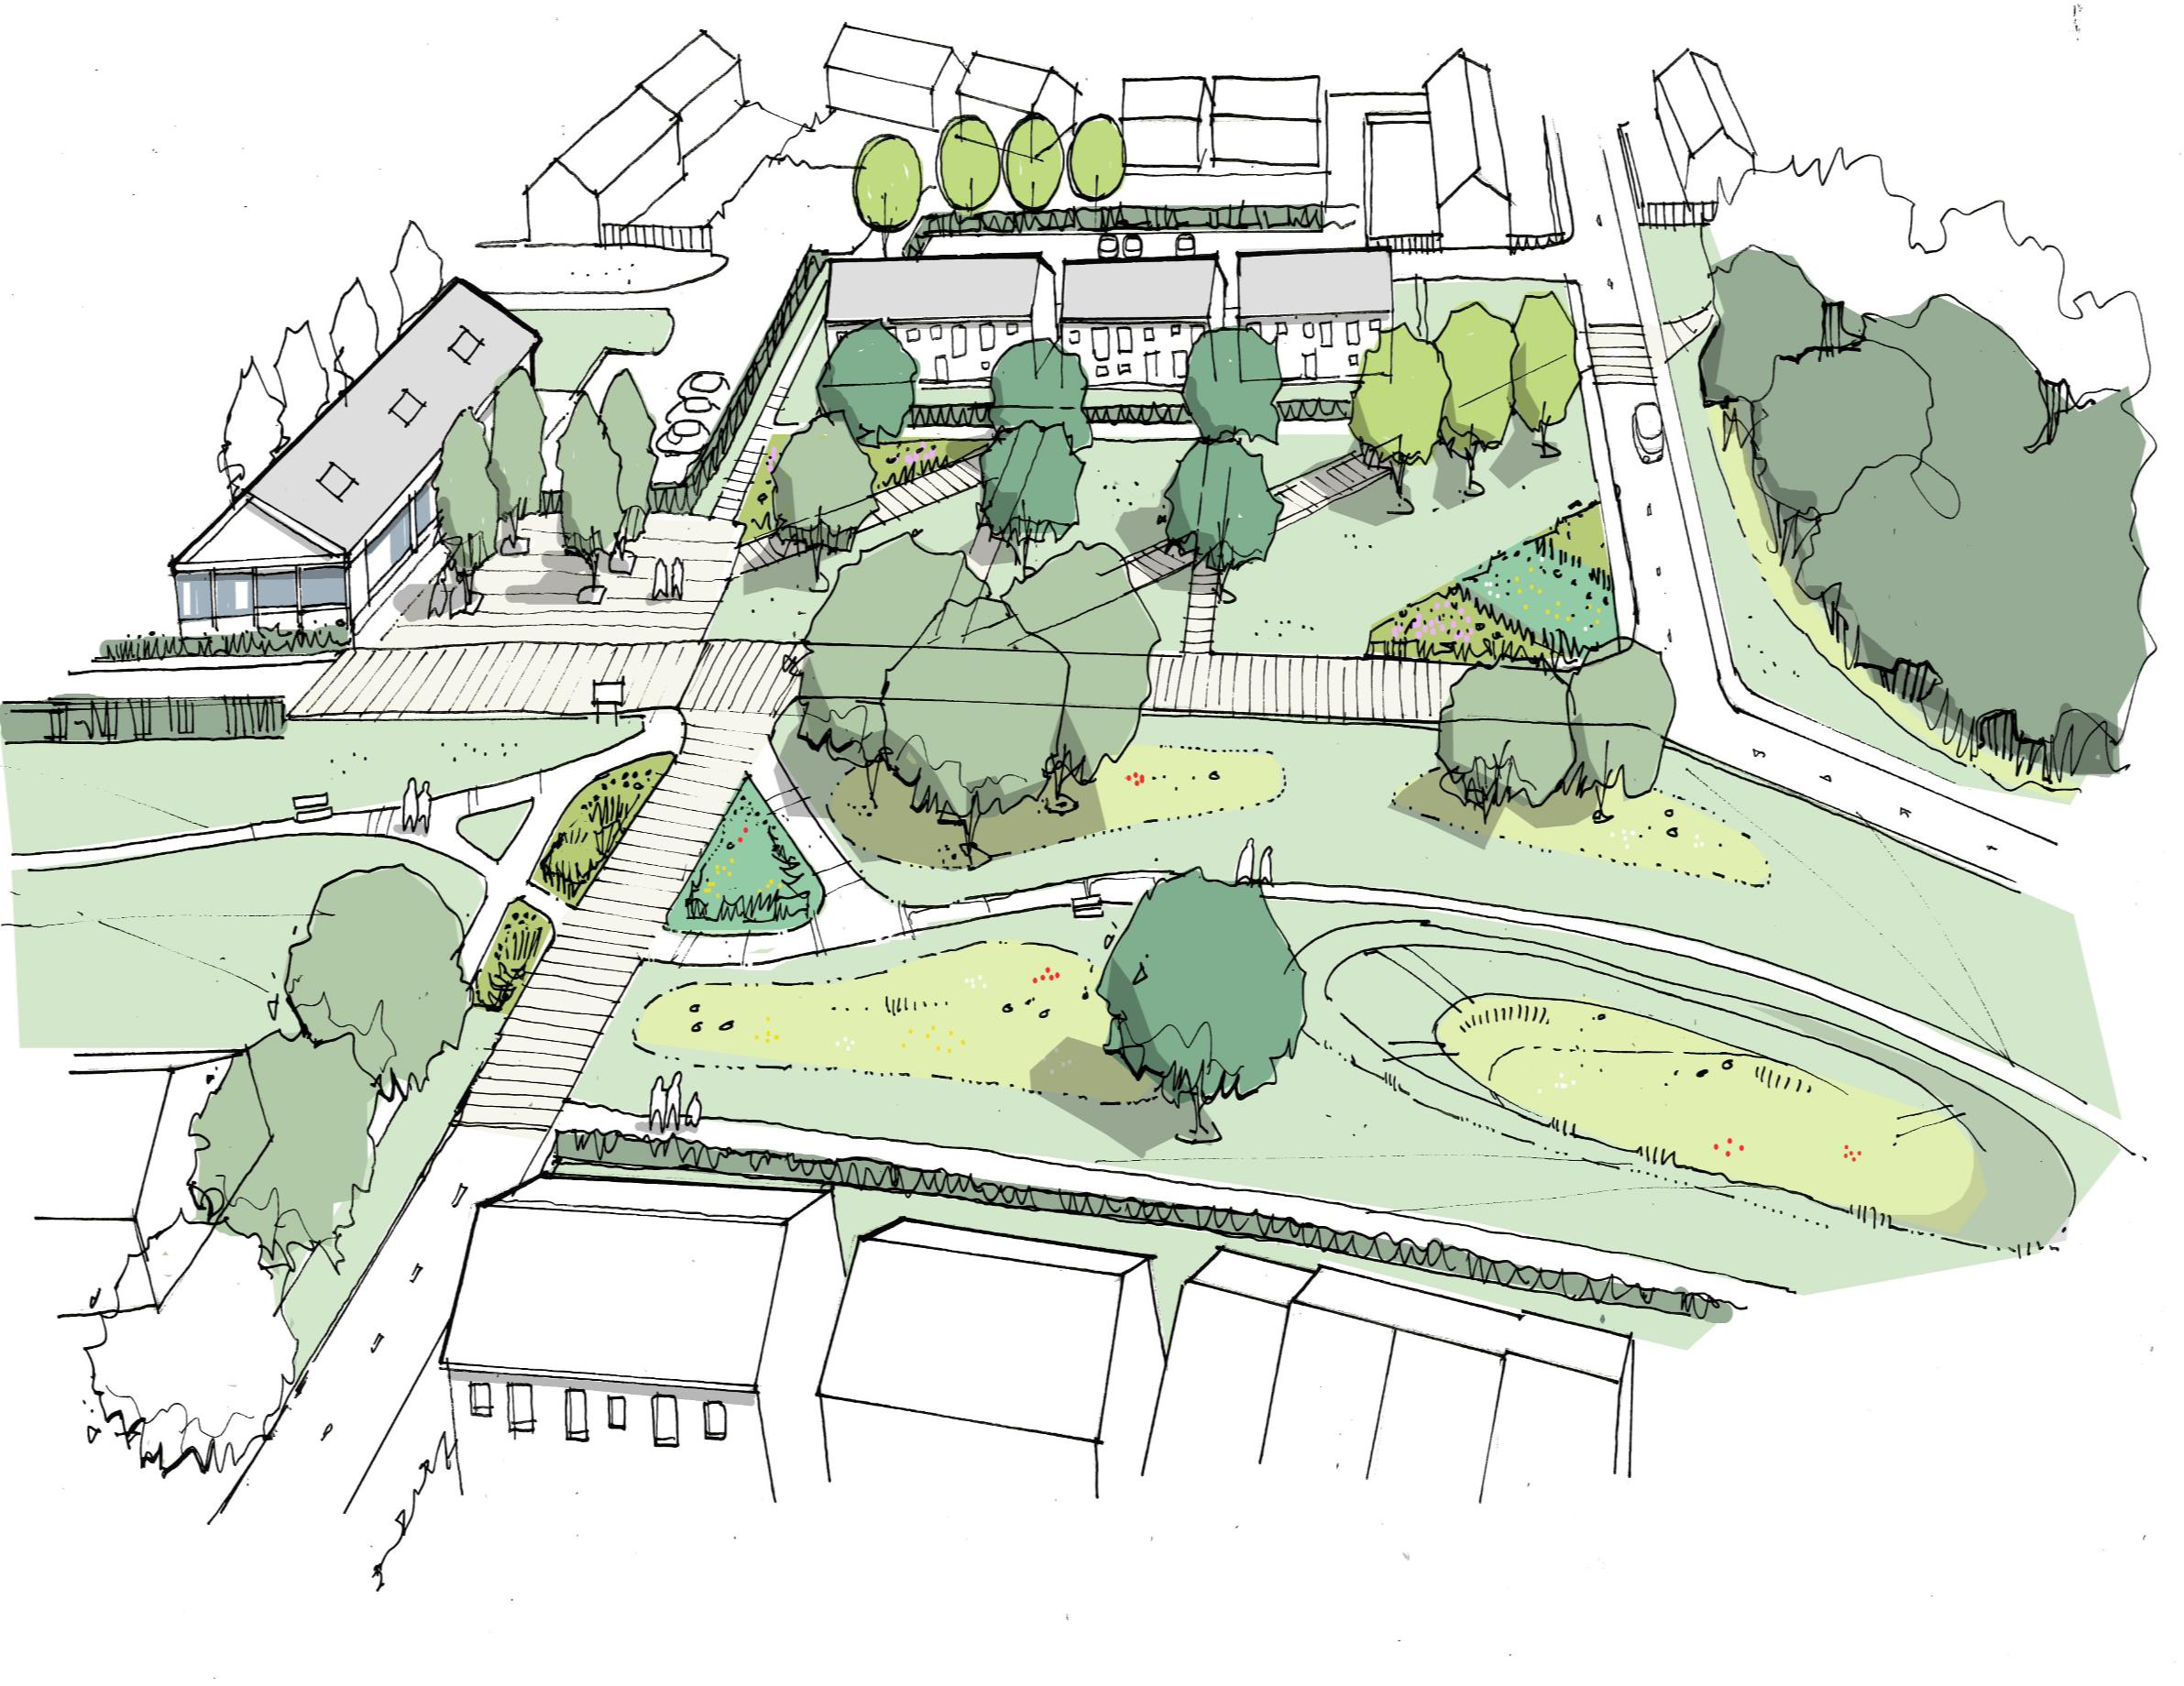 An artist's impression of the proposed development at Cloverhill, Bridge of Don